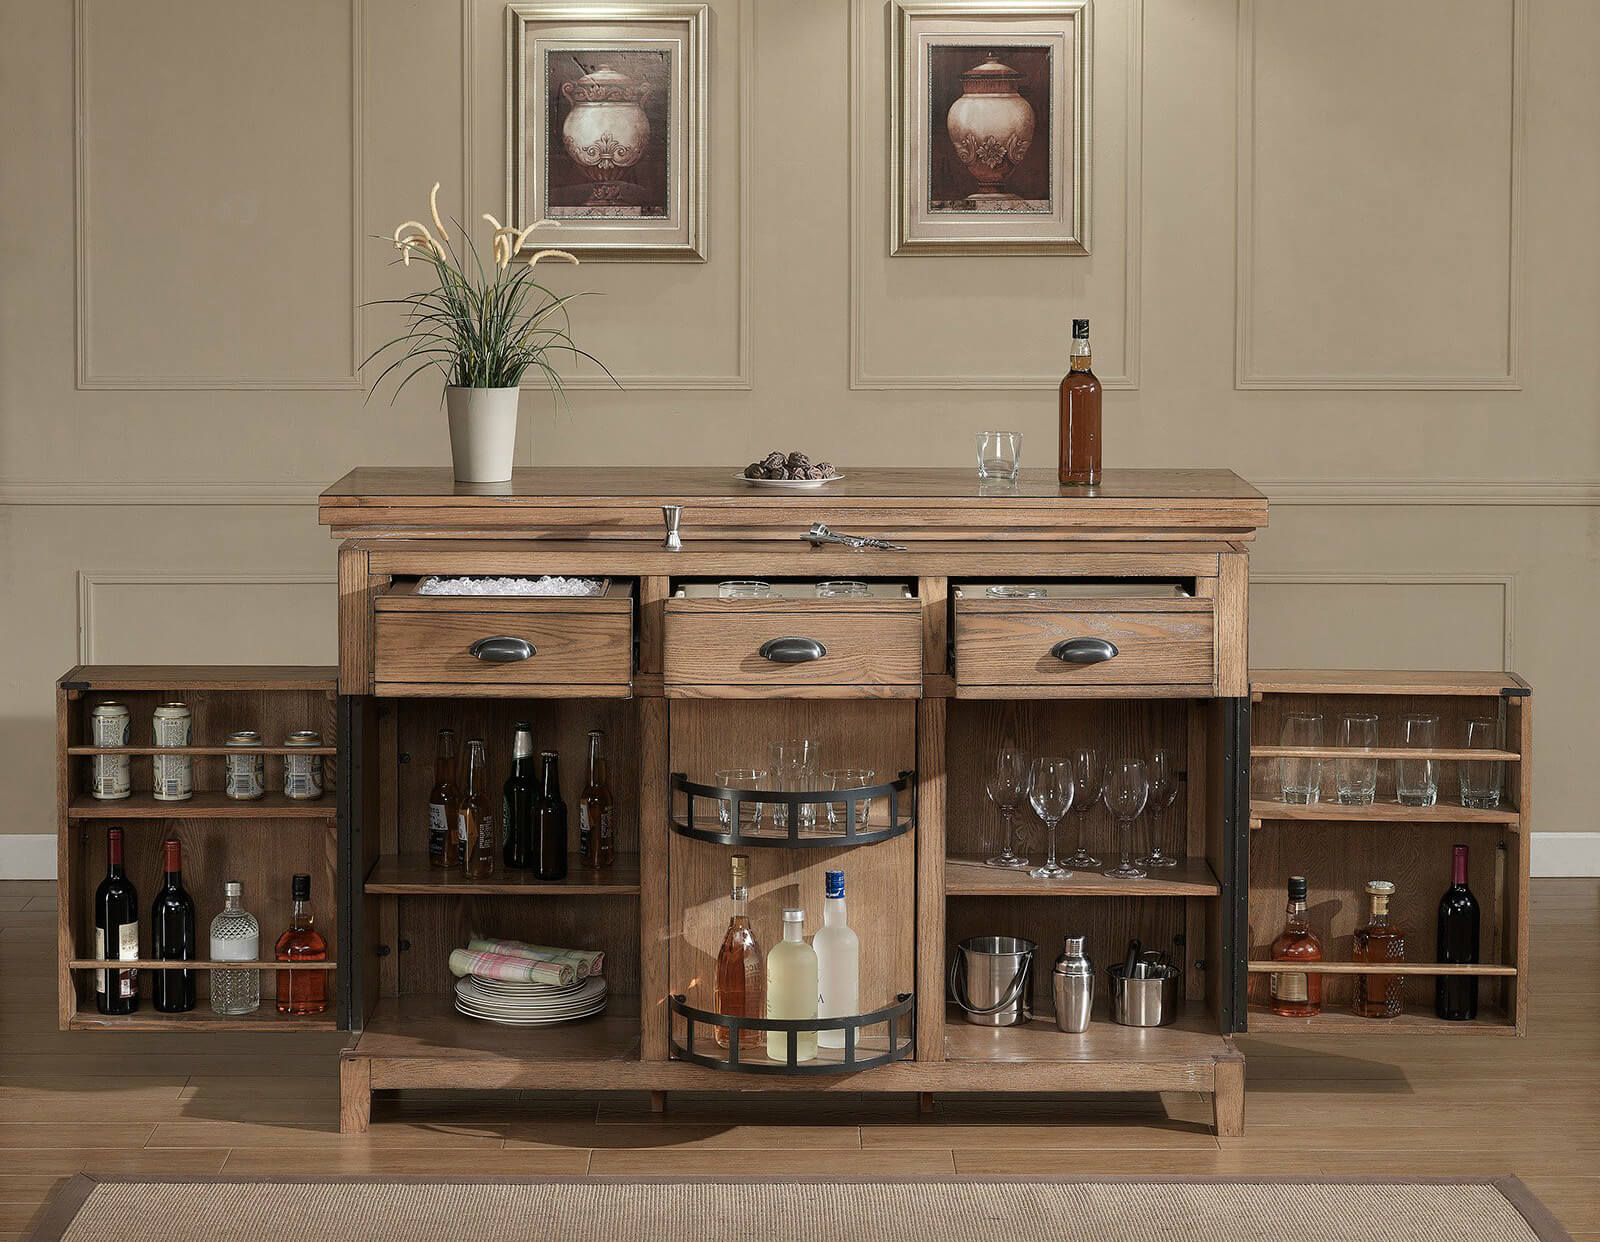 as you can see the amount of storage in this rustic home bar cabinet unit